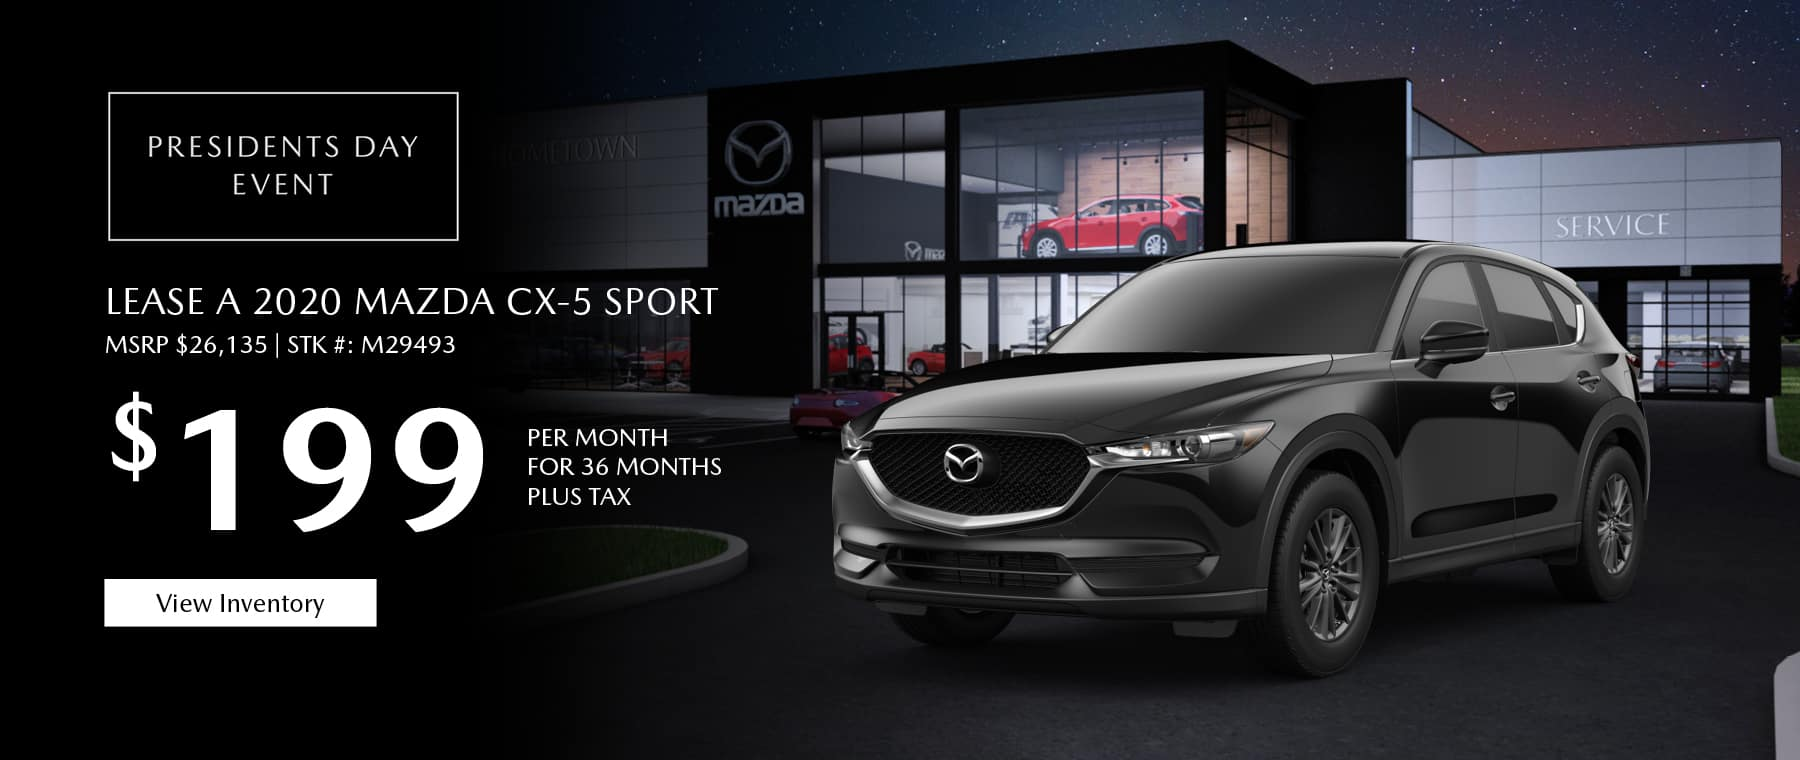 Lease the 2020 Mazda CX-5 for $199 per month, plus tax.